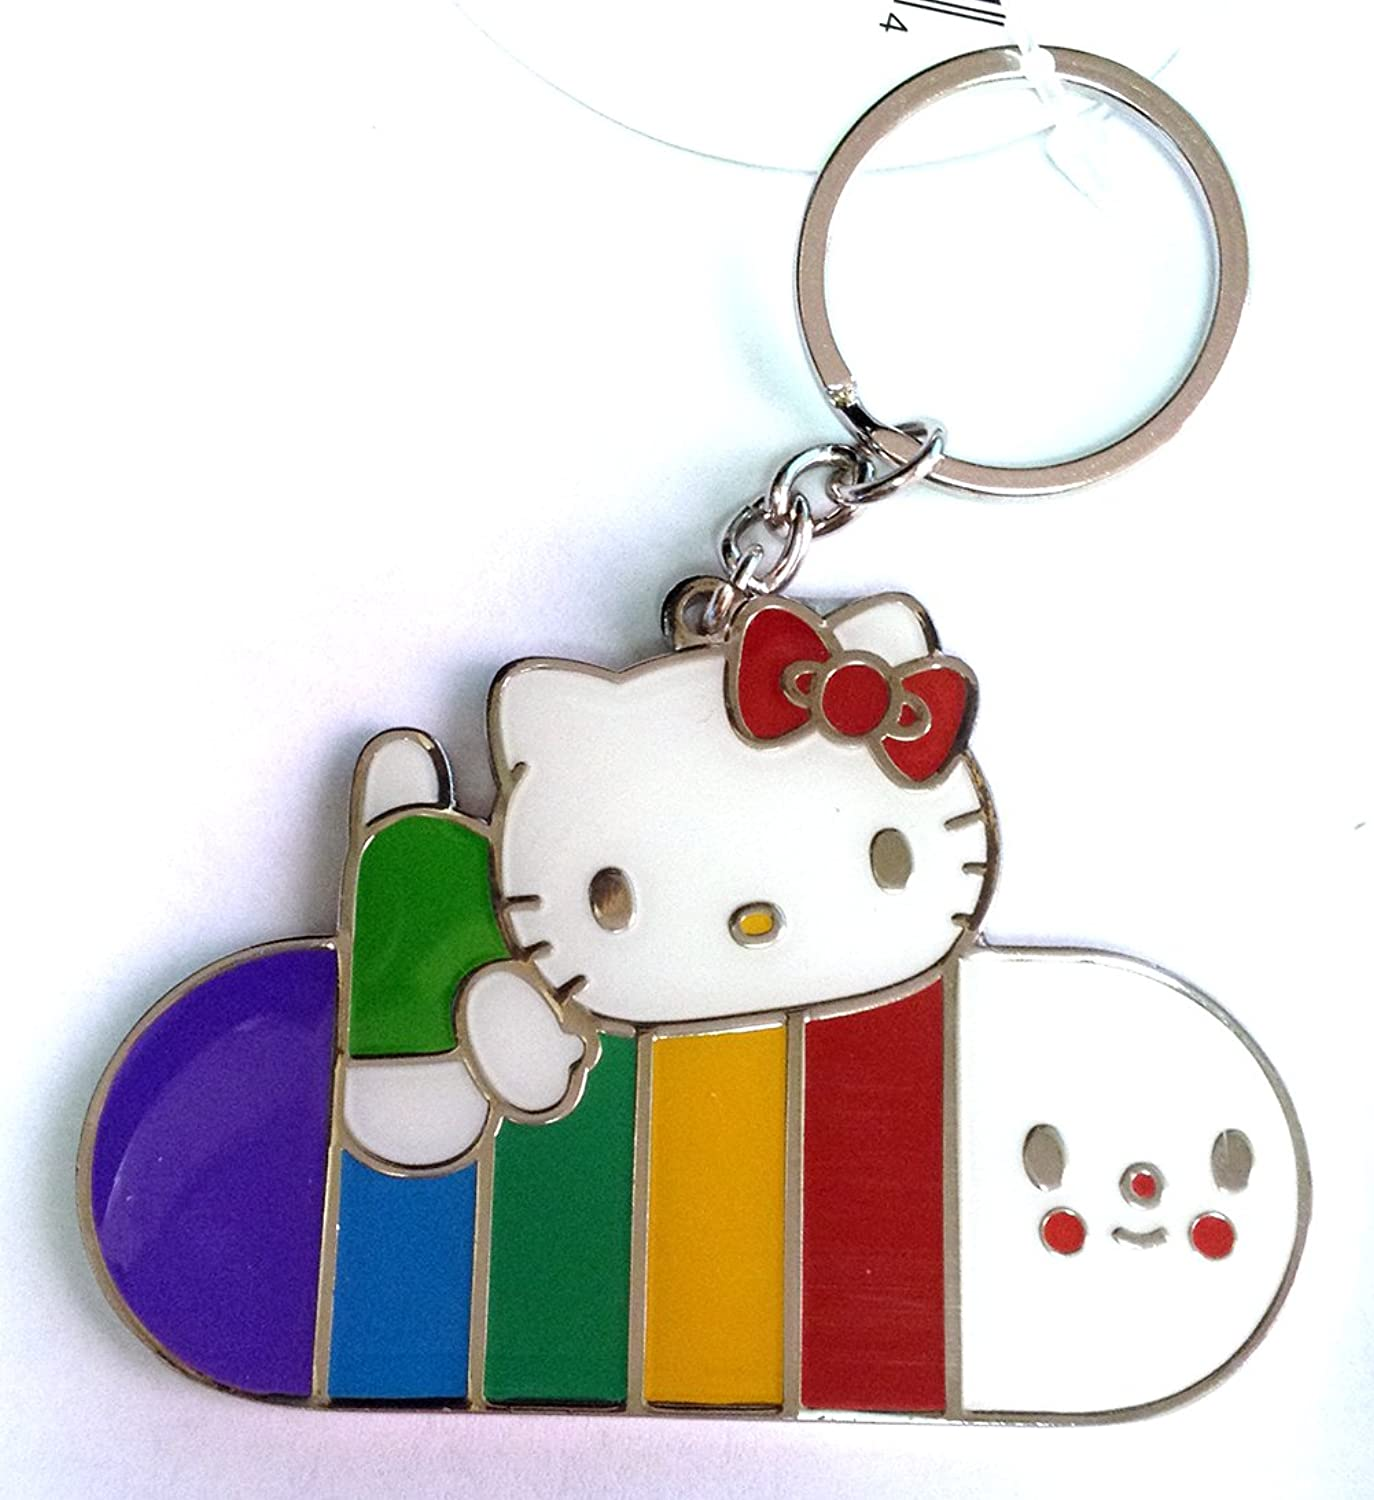 Hello Kitty X Friendswithyou Collaborate to Make Wishes Come True Keychain : Lets Go